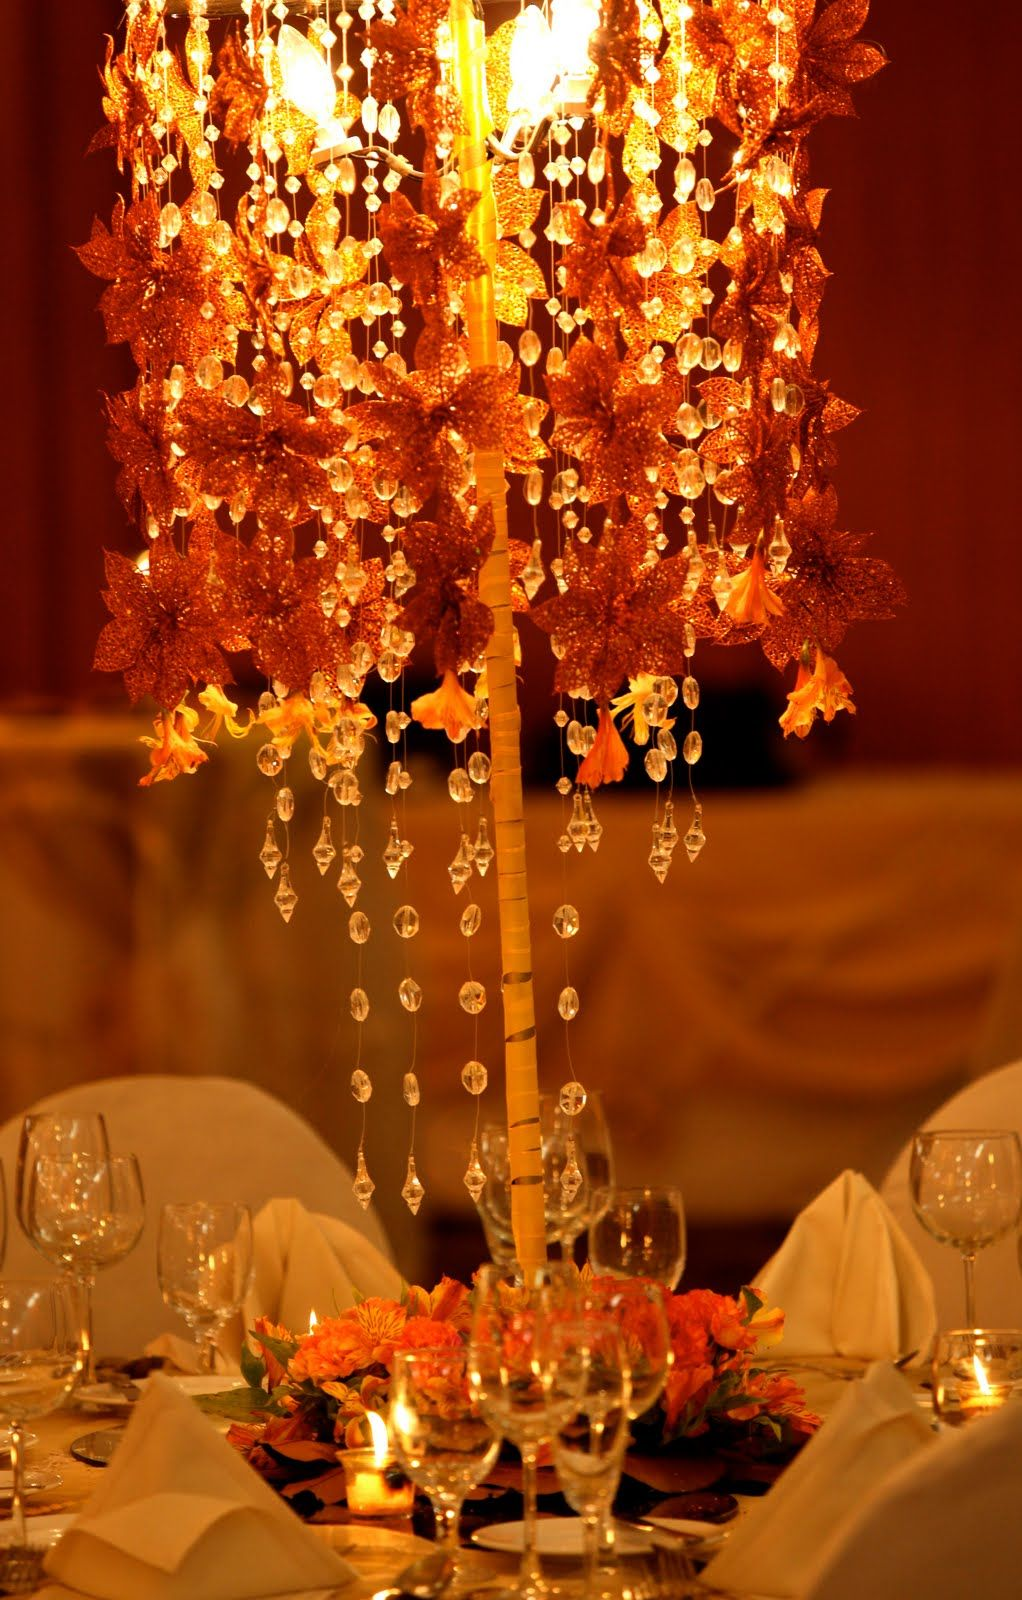 autumn wedding centerpieces image sources clockwise from upper left